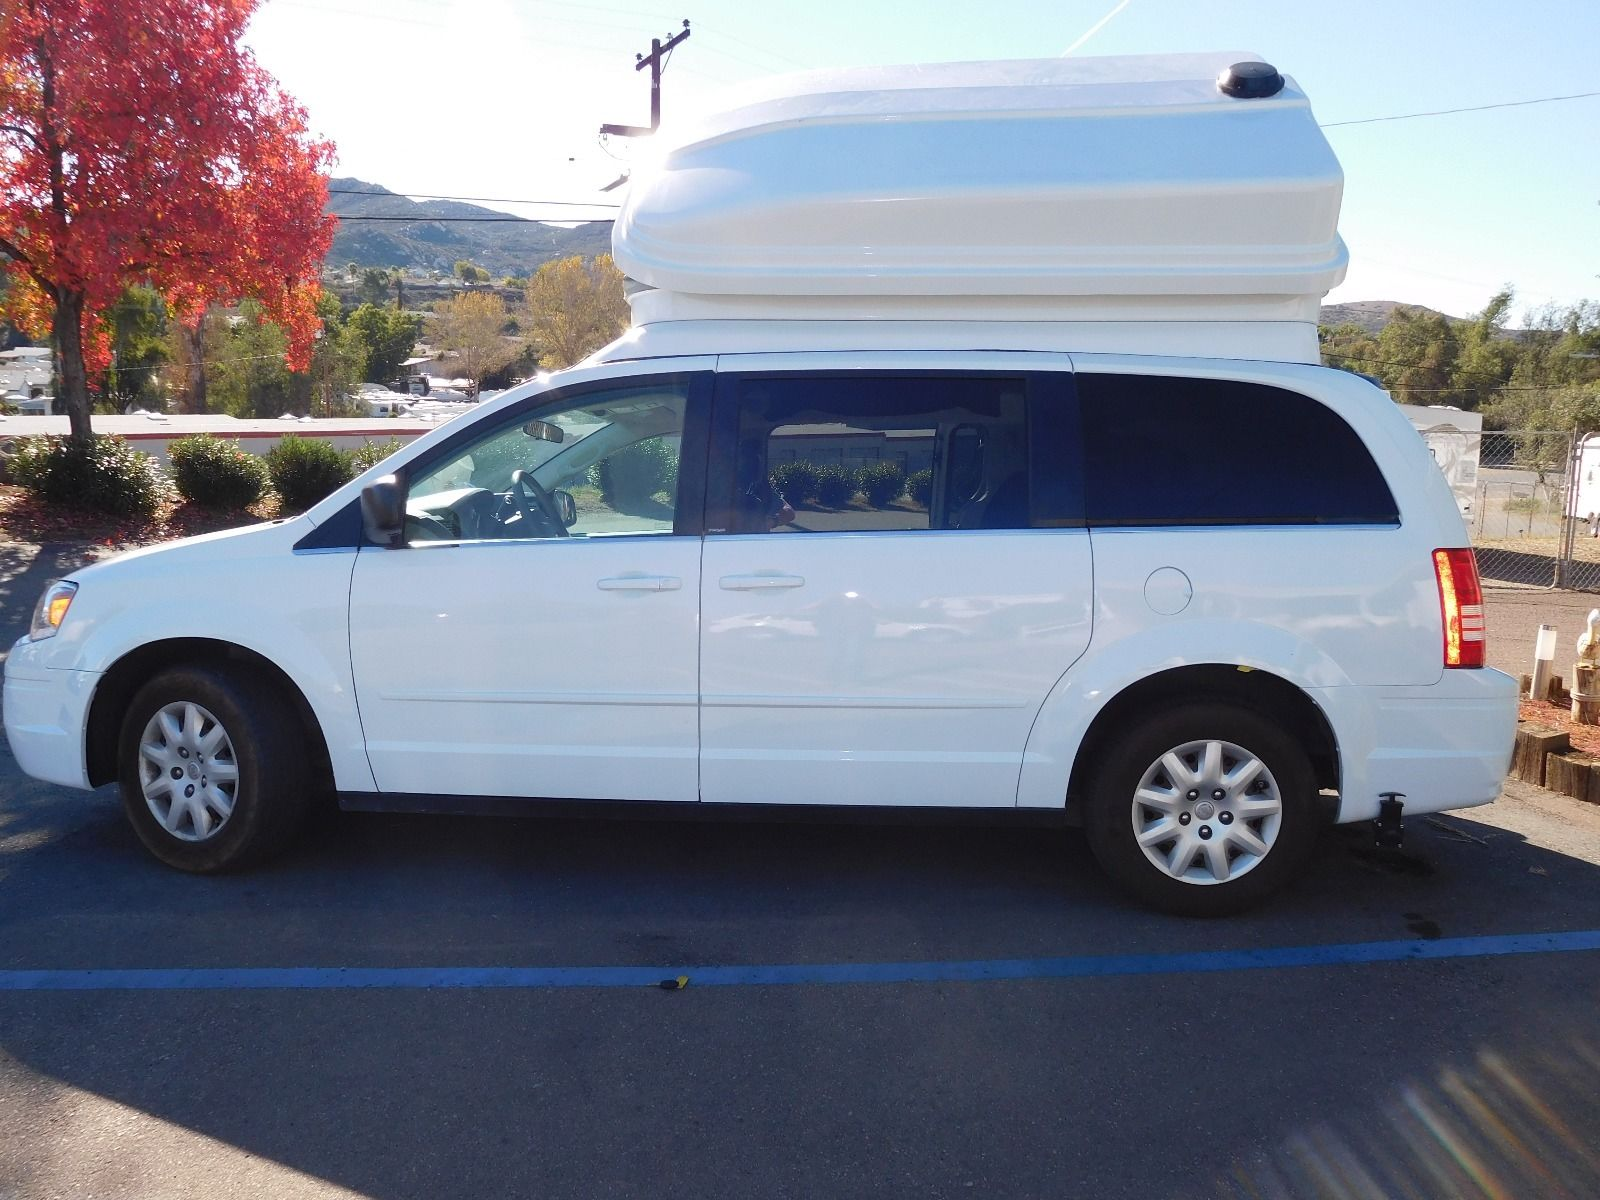 A 2010 Chrysler Town and Country van.